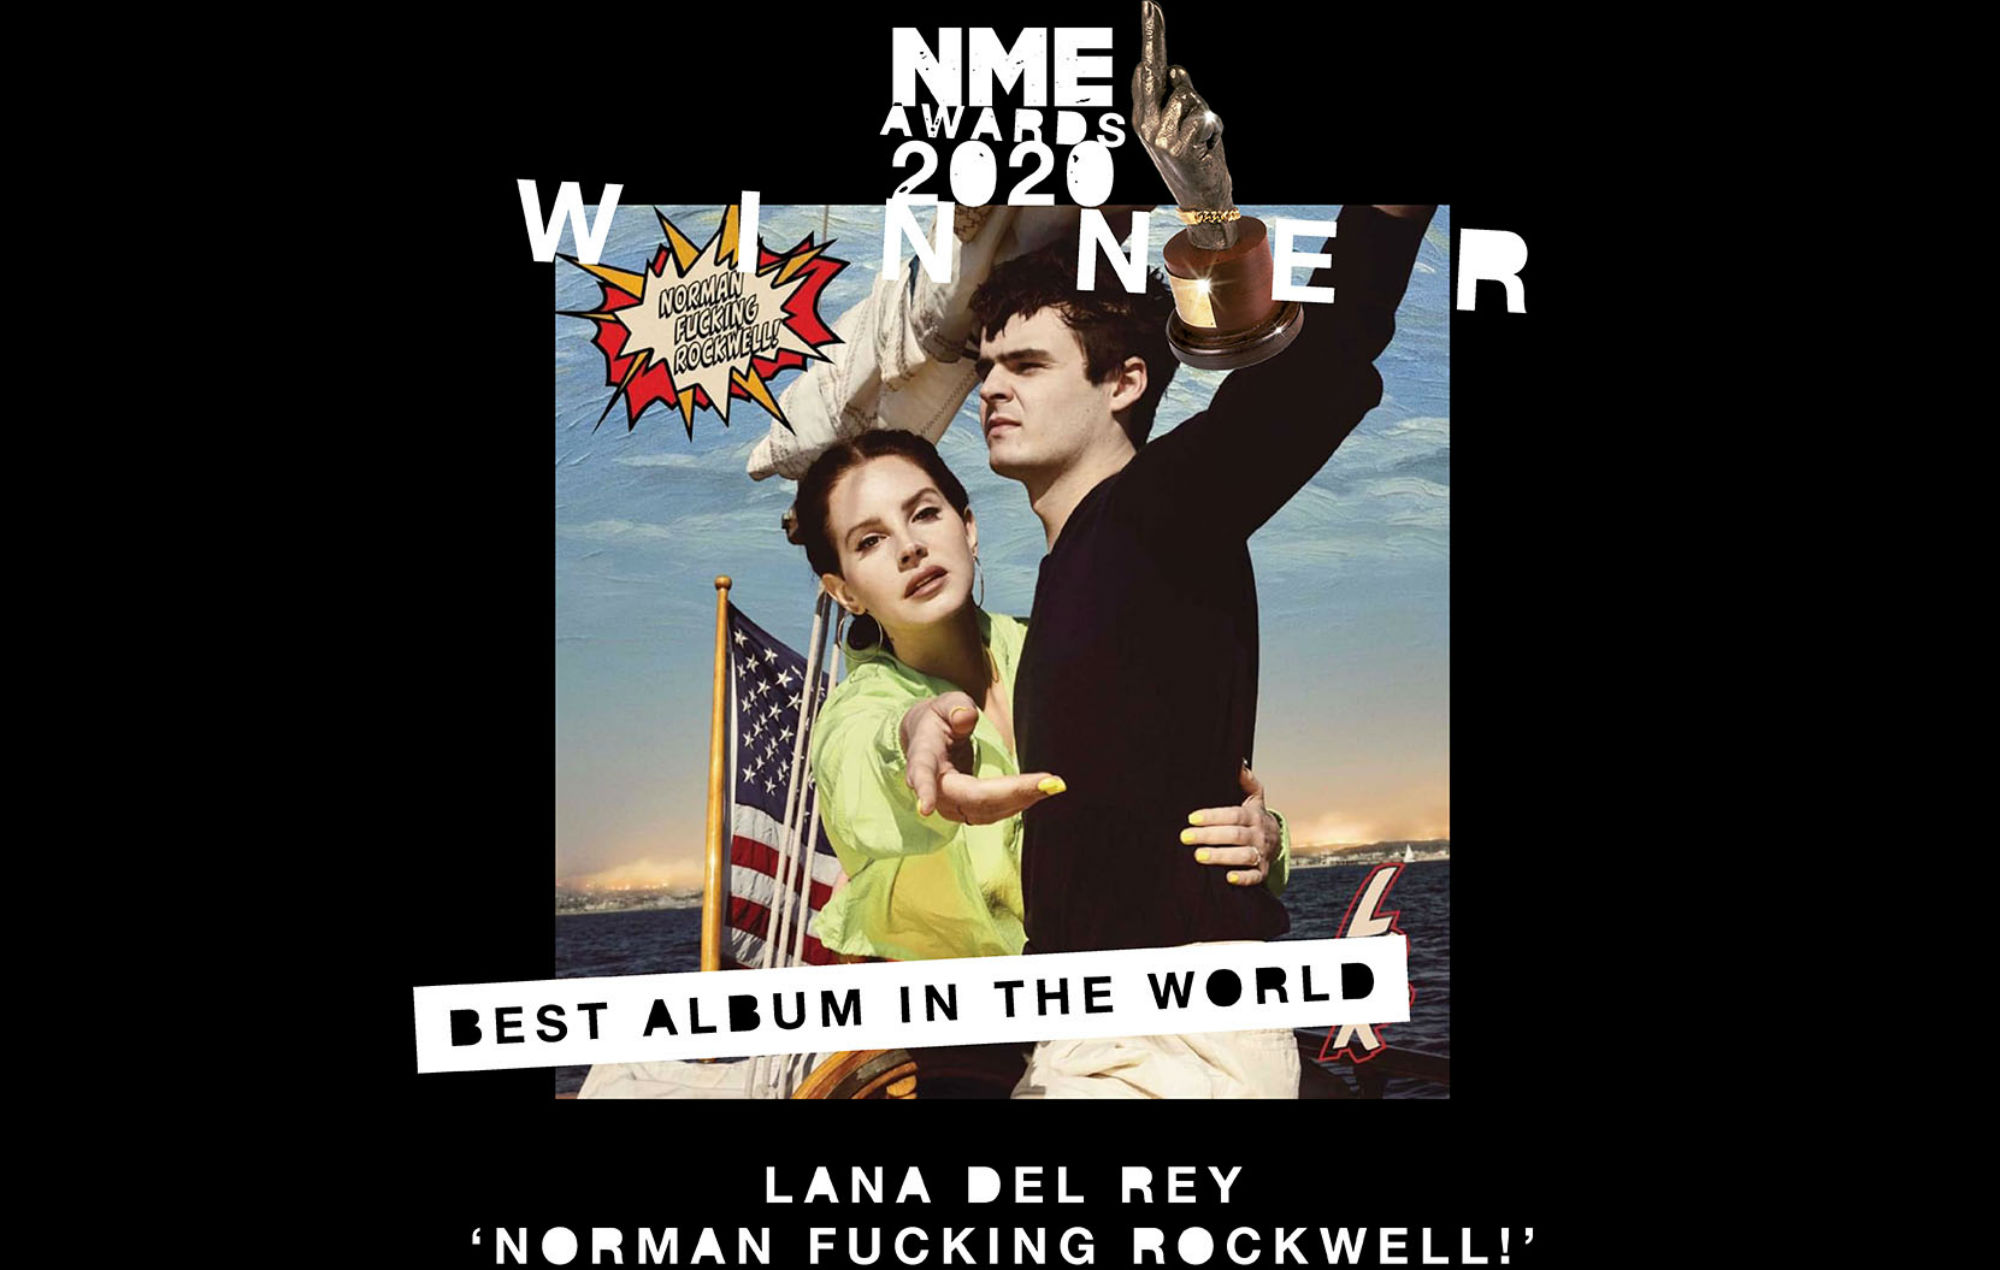 Lana Del Rey wins Best Album In The World at NME Awards 2020